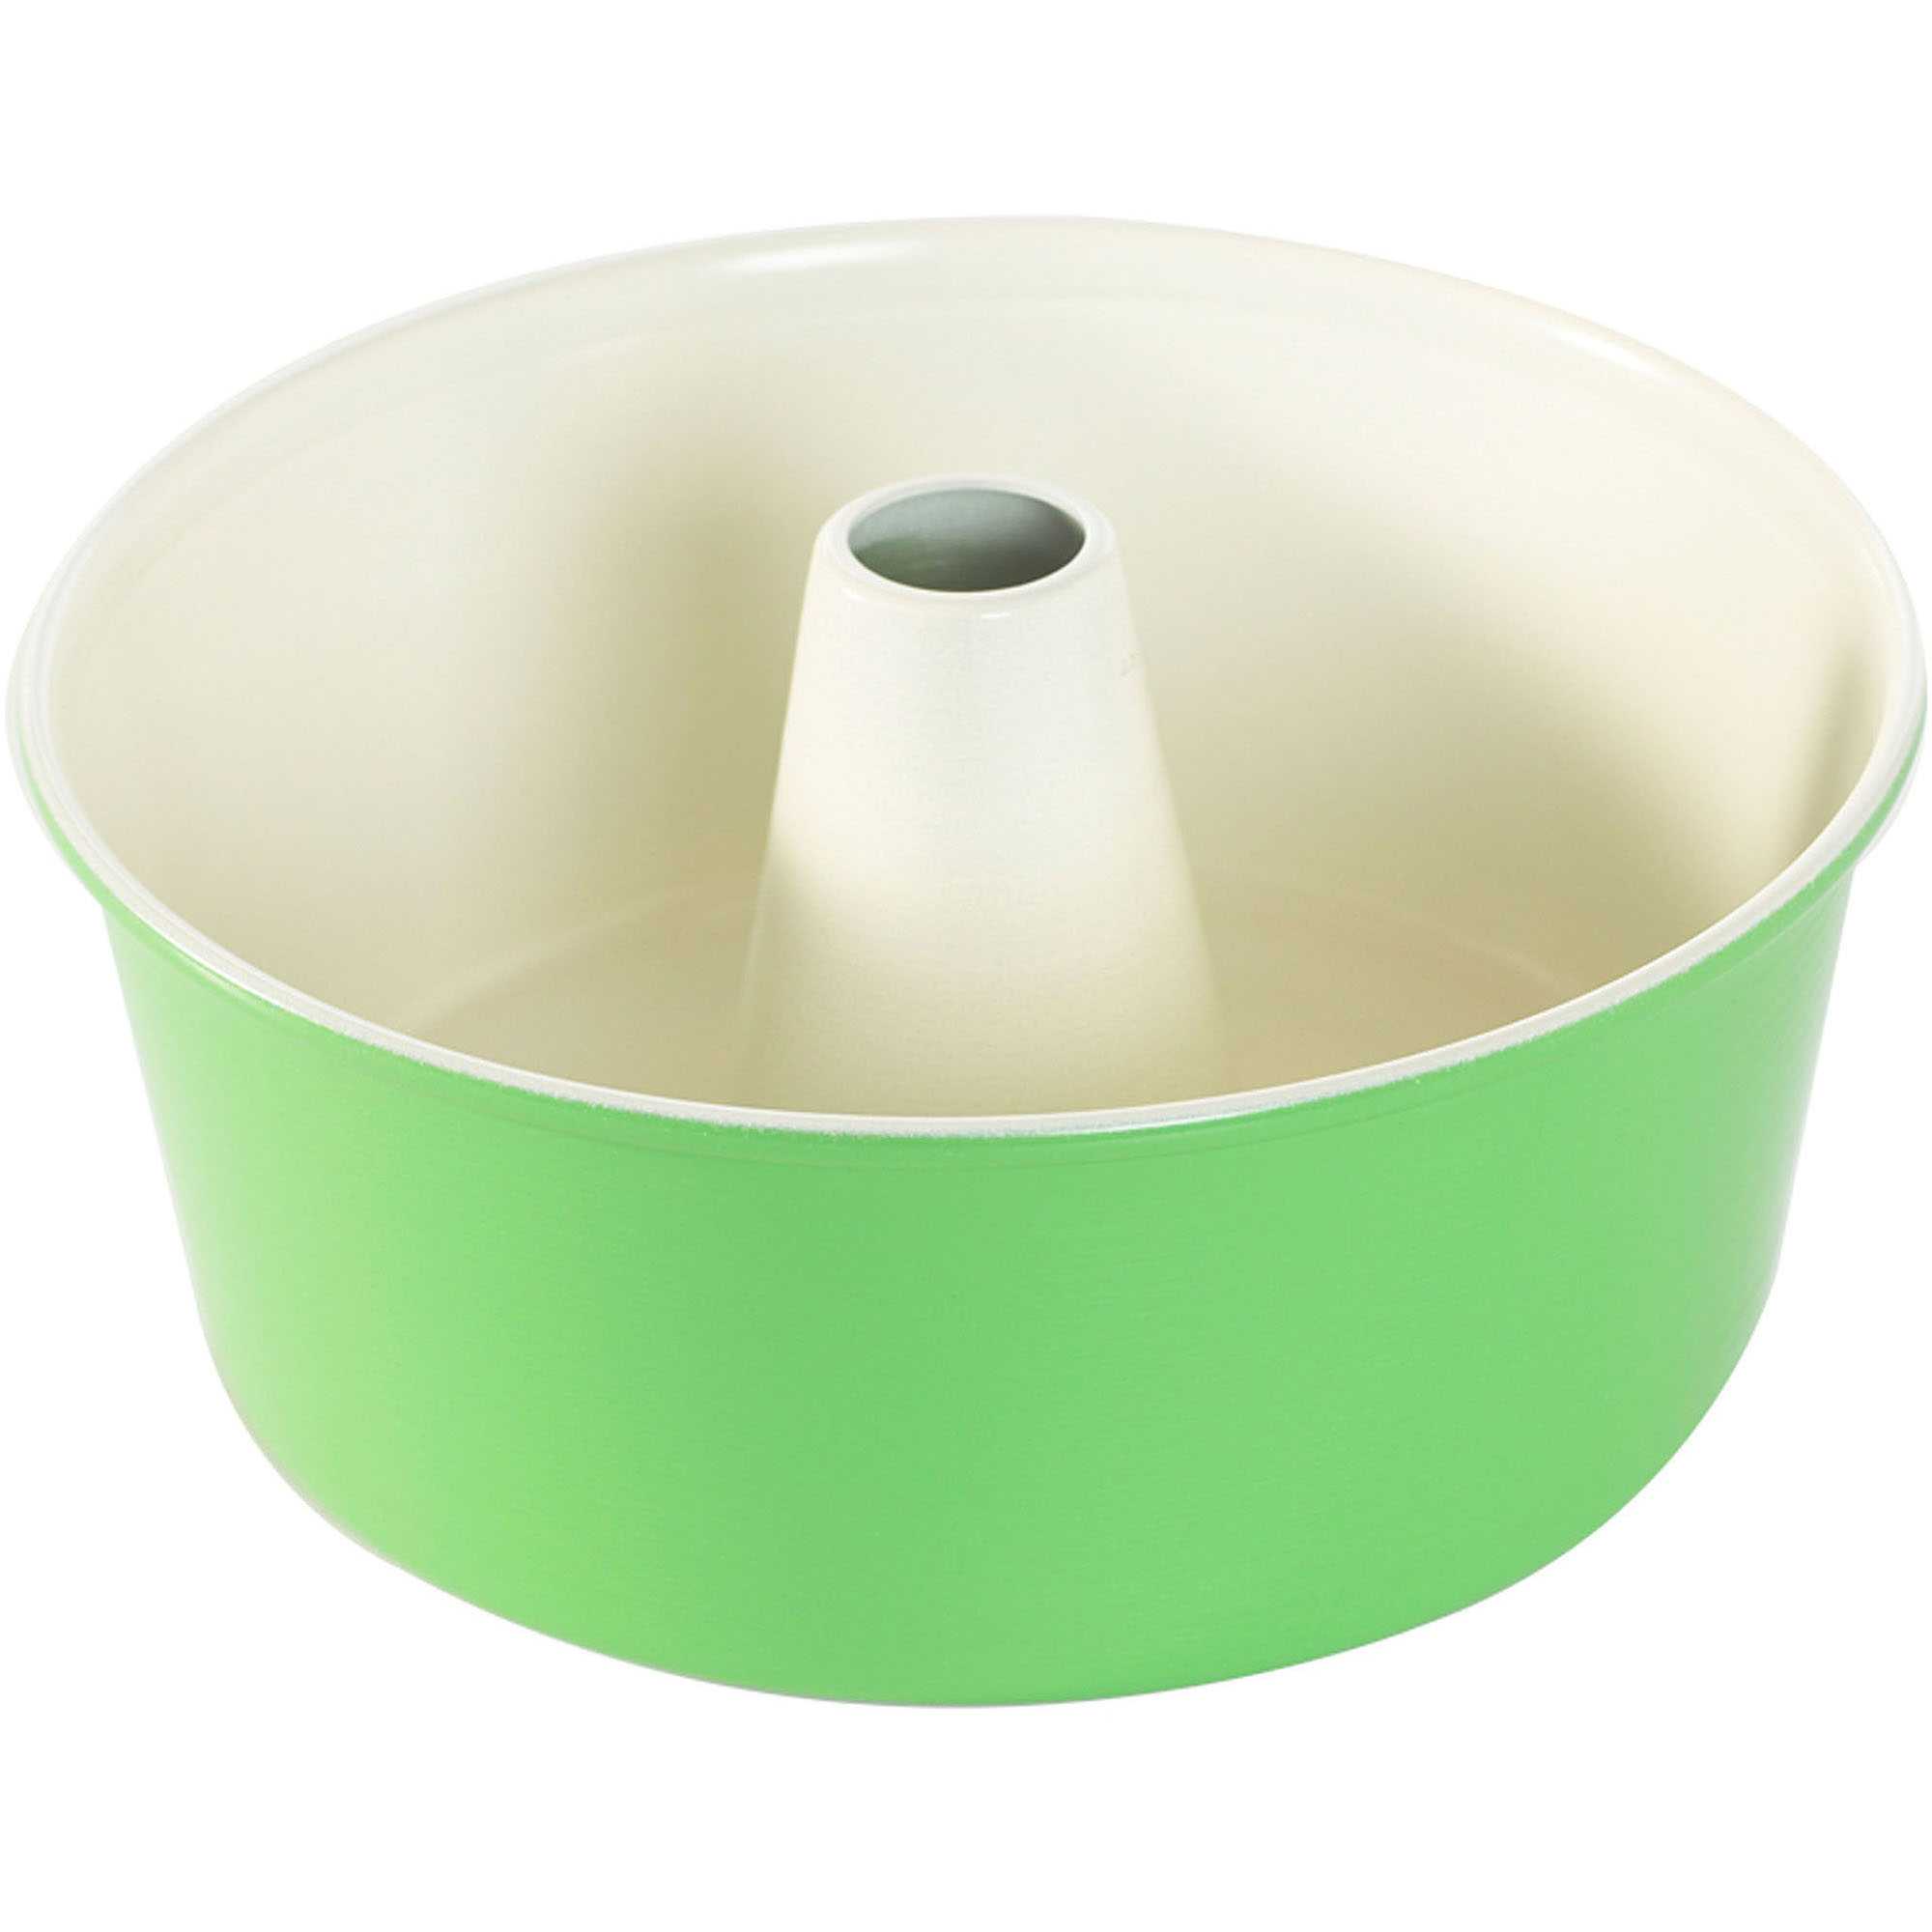 "Nordic Ware Angel Food Cake Pan, Aluminum , 5 Year Warranty, 0.68 lbs, 16 Cup, 10"" X 10"" X 4.5"" by Northland Aluminum Products"